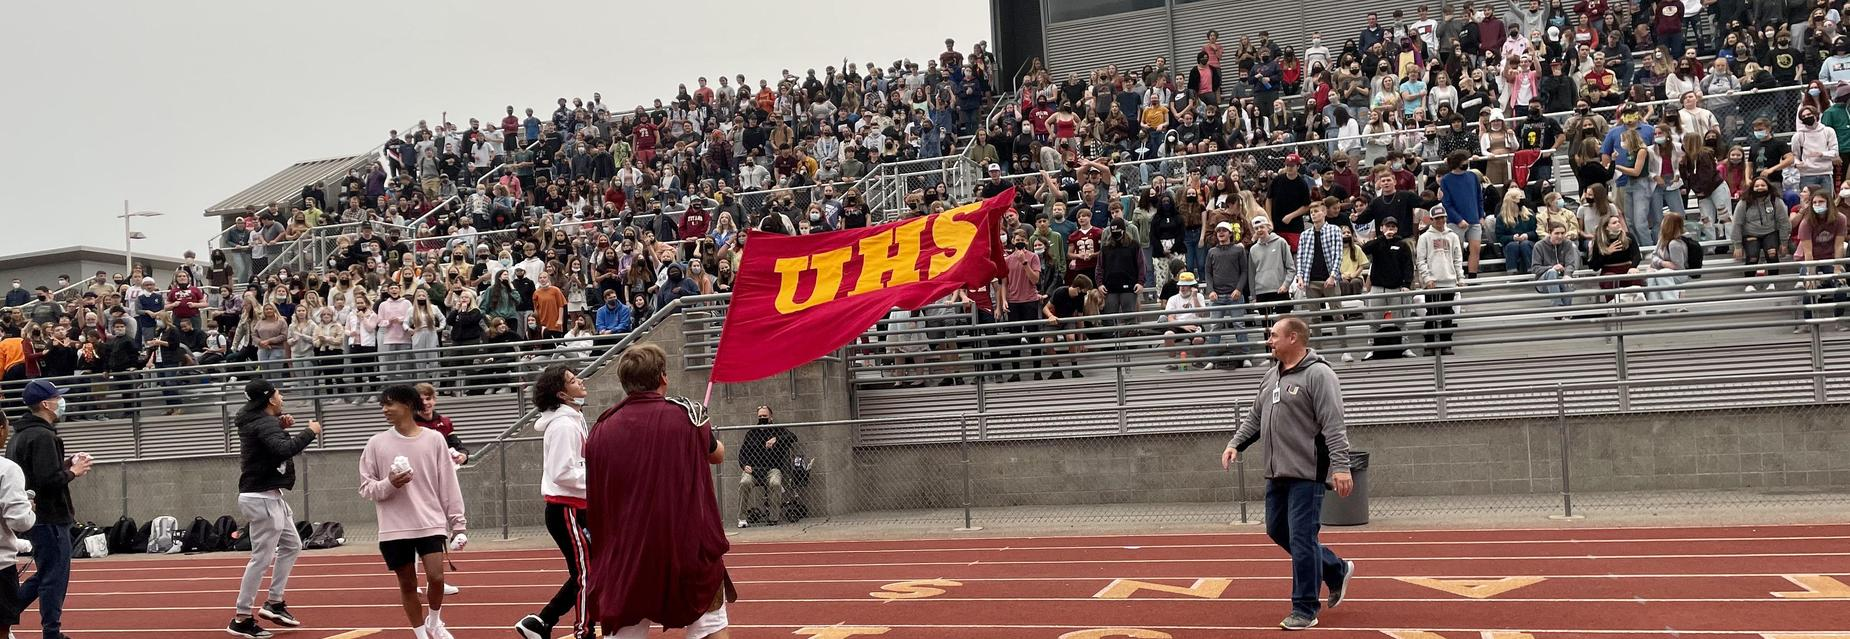 UHS Spirit flag waved in front of student body in the stadium.